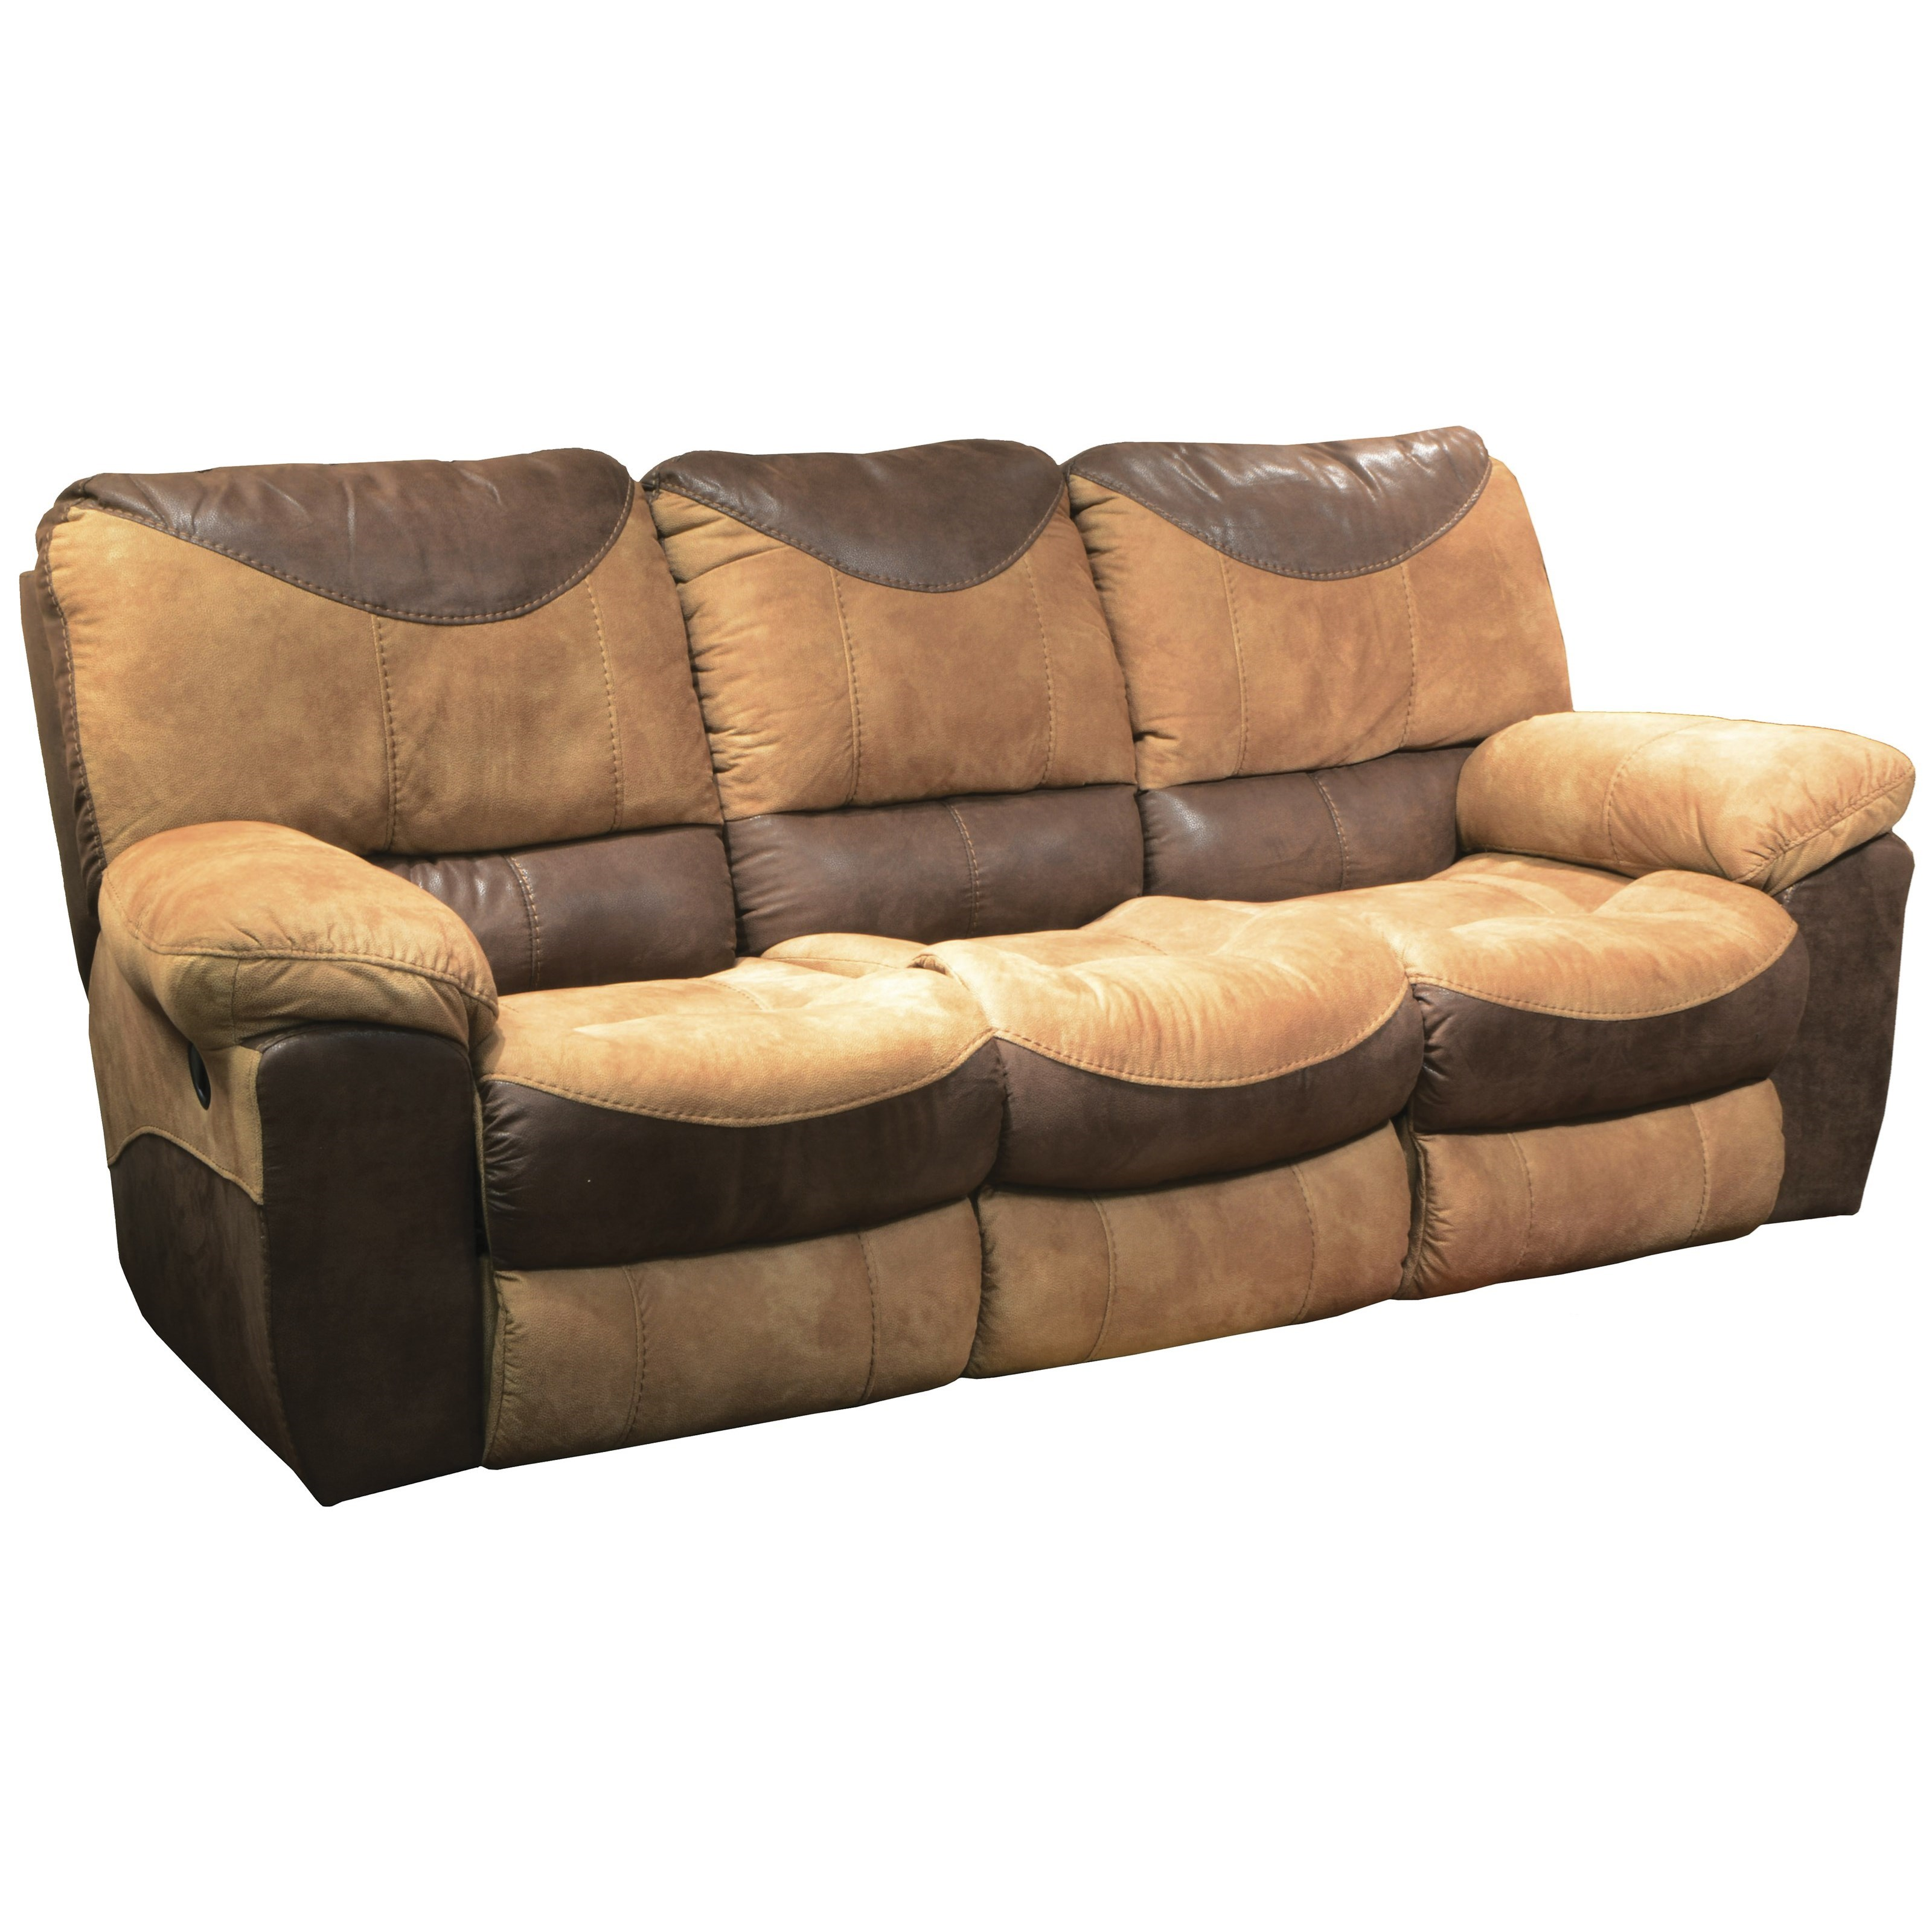 Country furniture sofa - Three Seat Reclining Sofa With Casual Country Charm